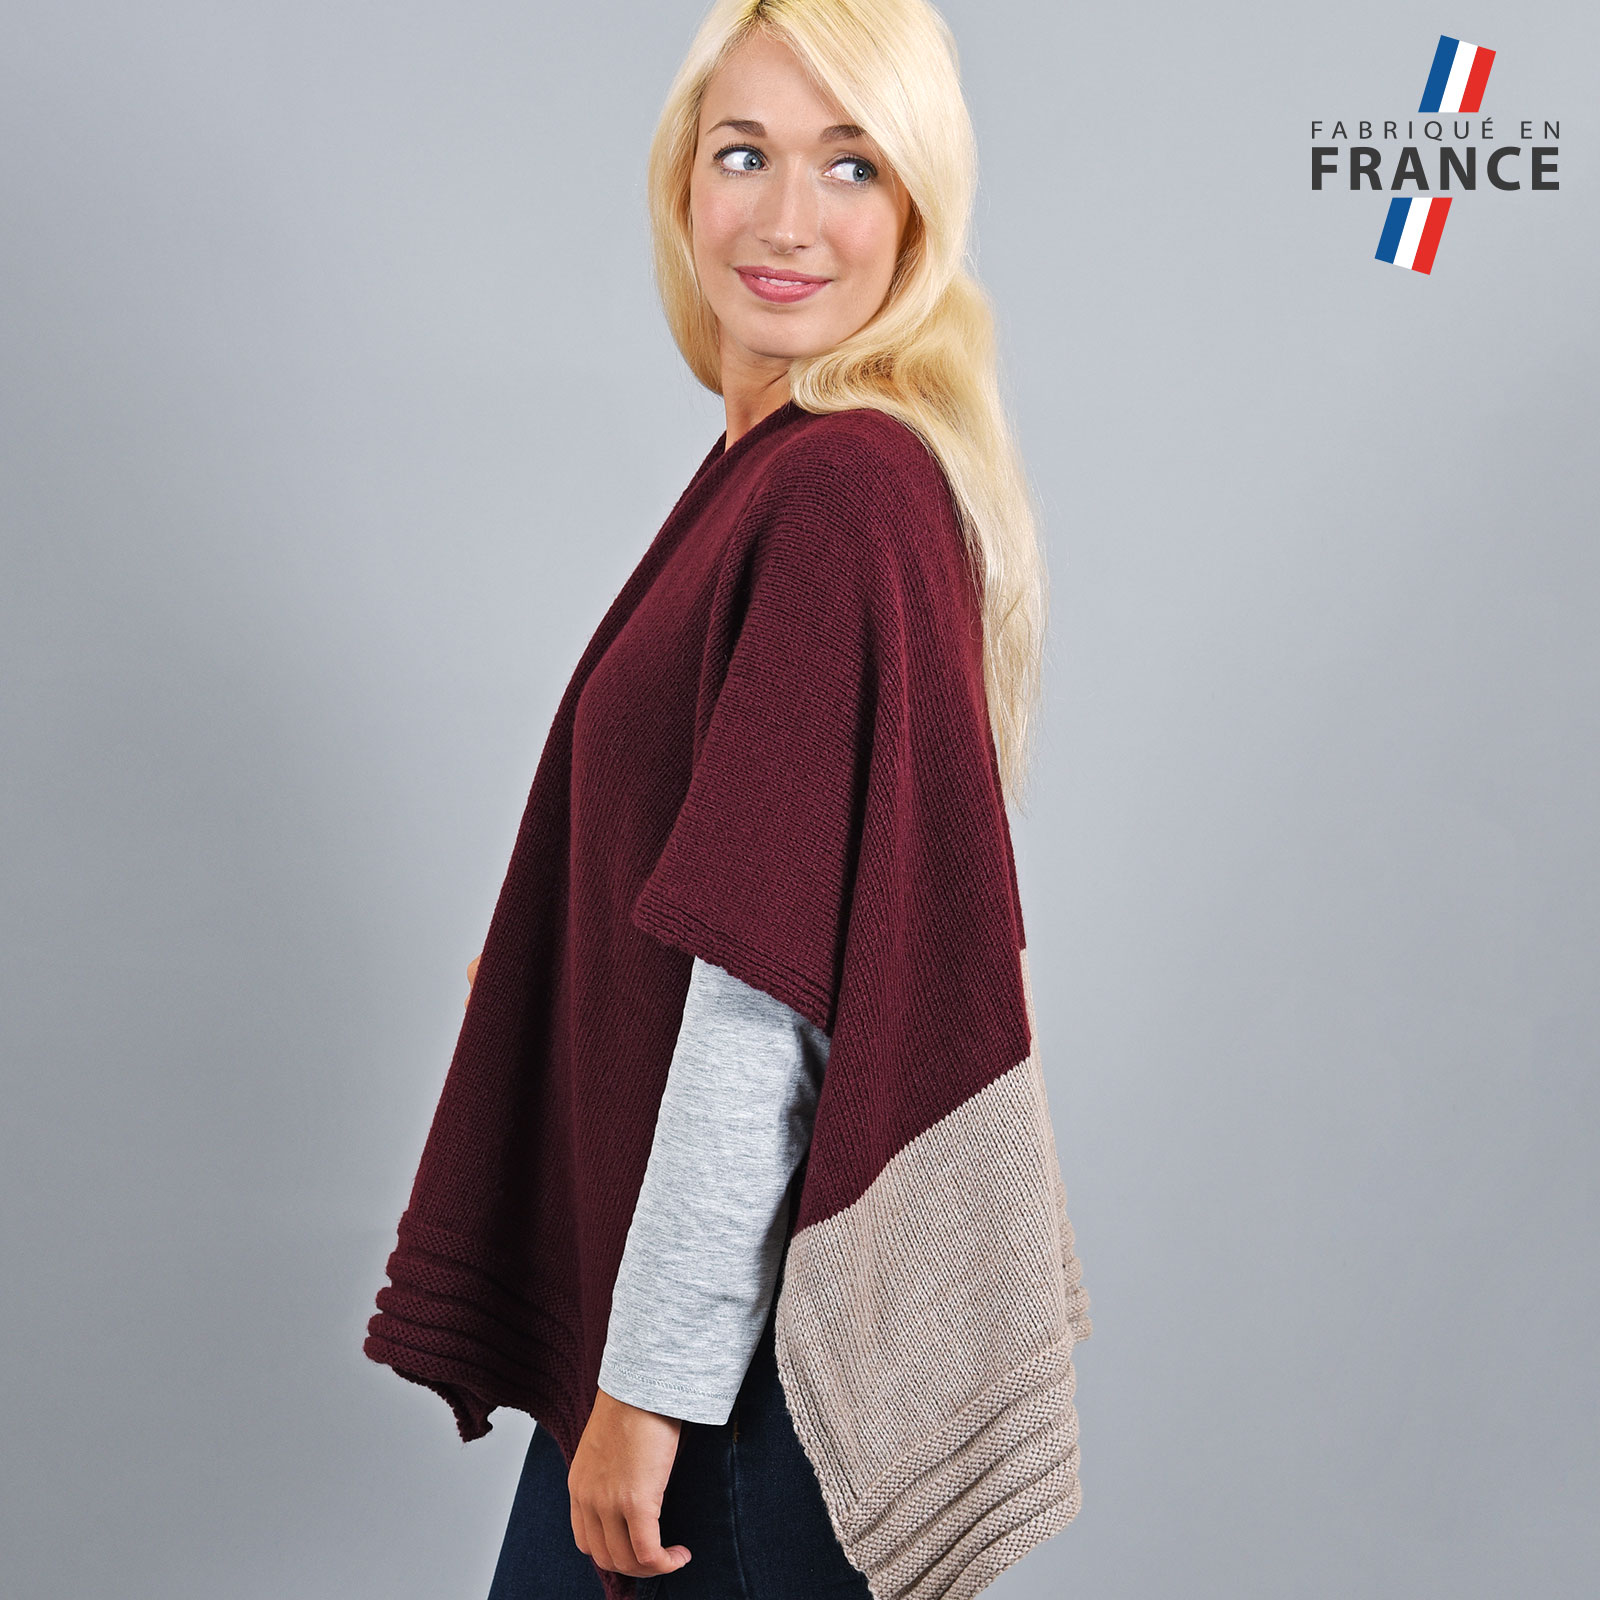 AT-03198-VF16-2-LB_FR-poncho-gilet-bordeaux-beige-fabrication-francaise